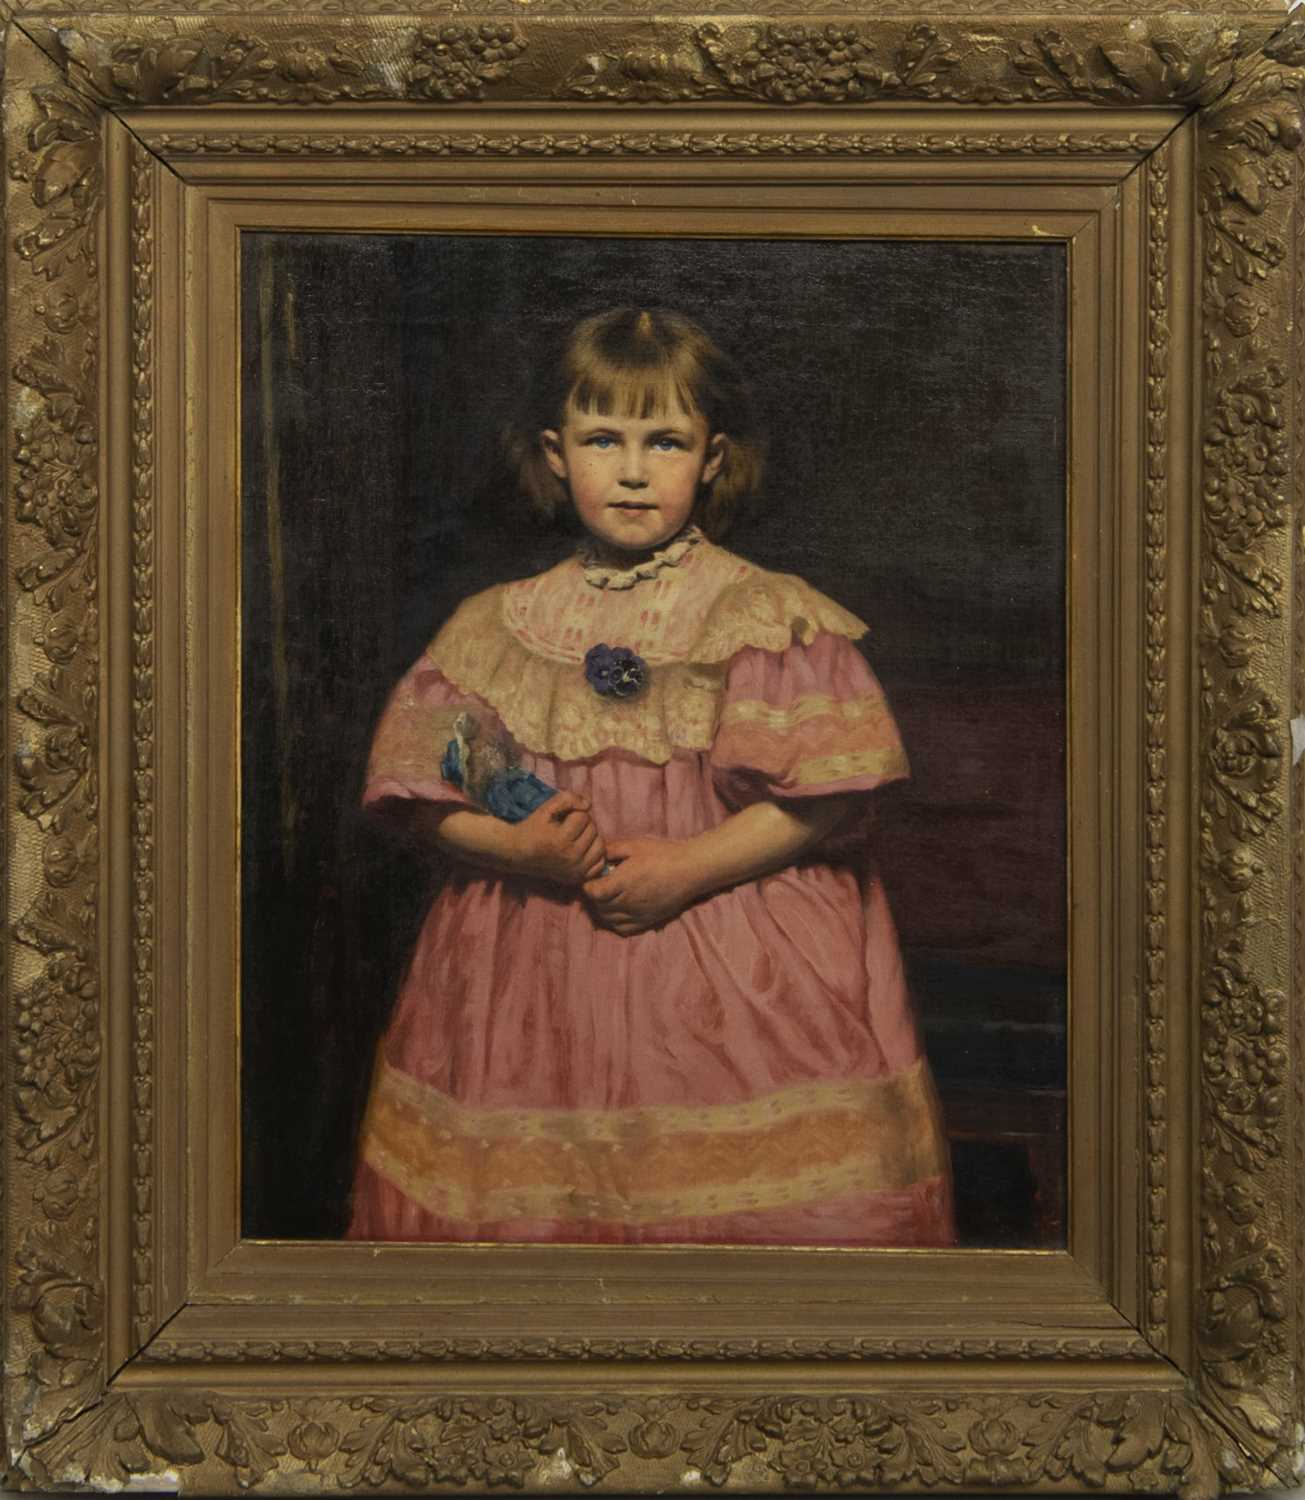 Lot 132 - THE BLUE DOLL, AN OIL BY REGINALD WILLOUGHBY MACHELL